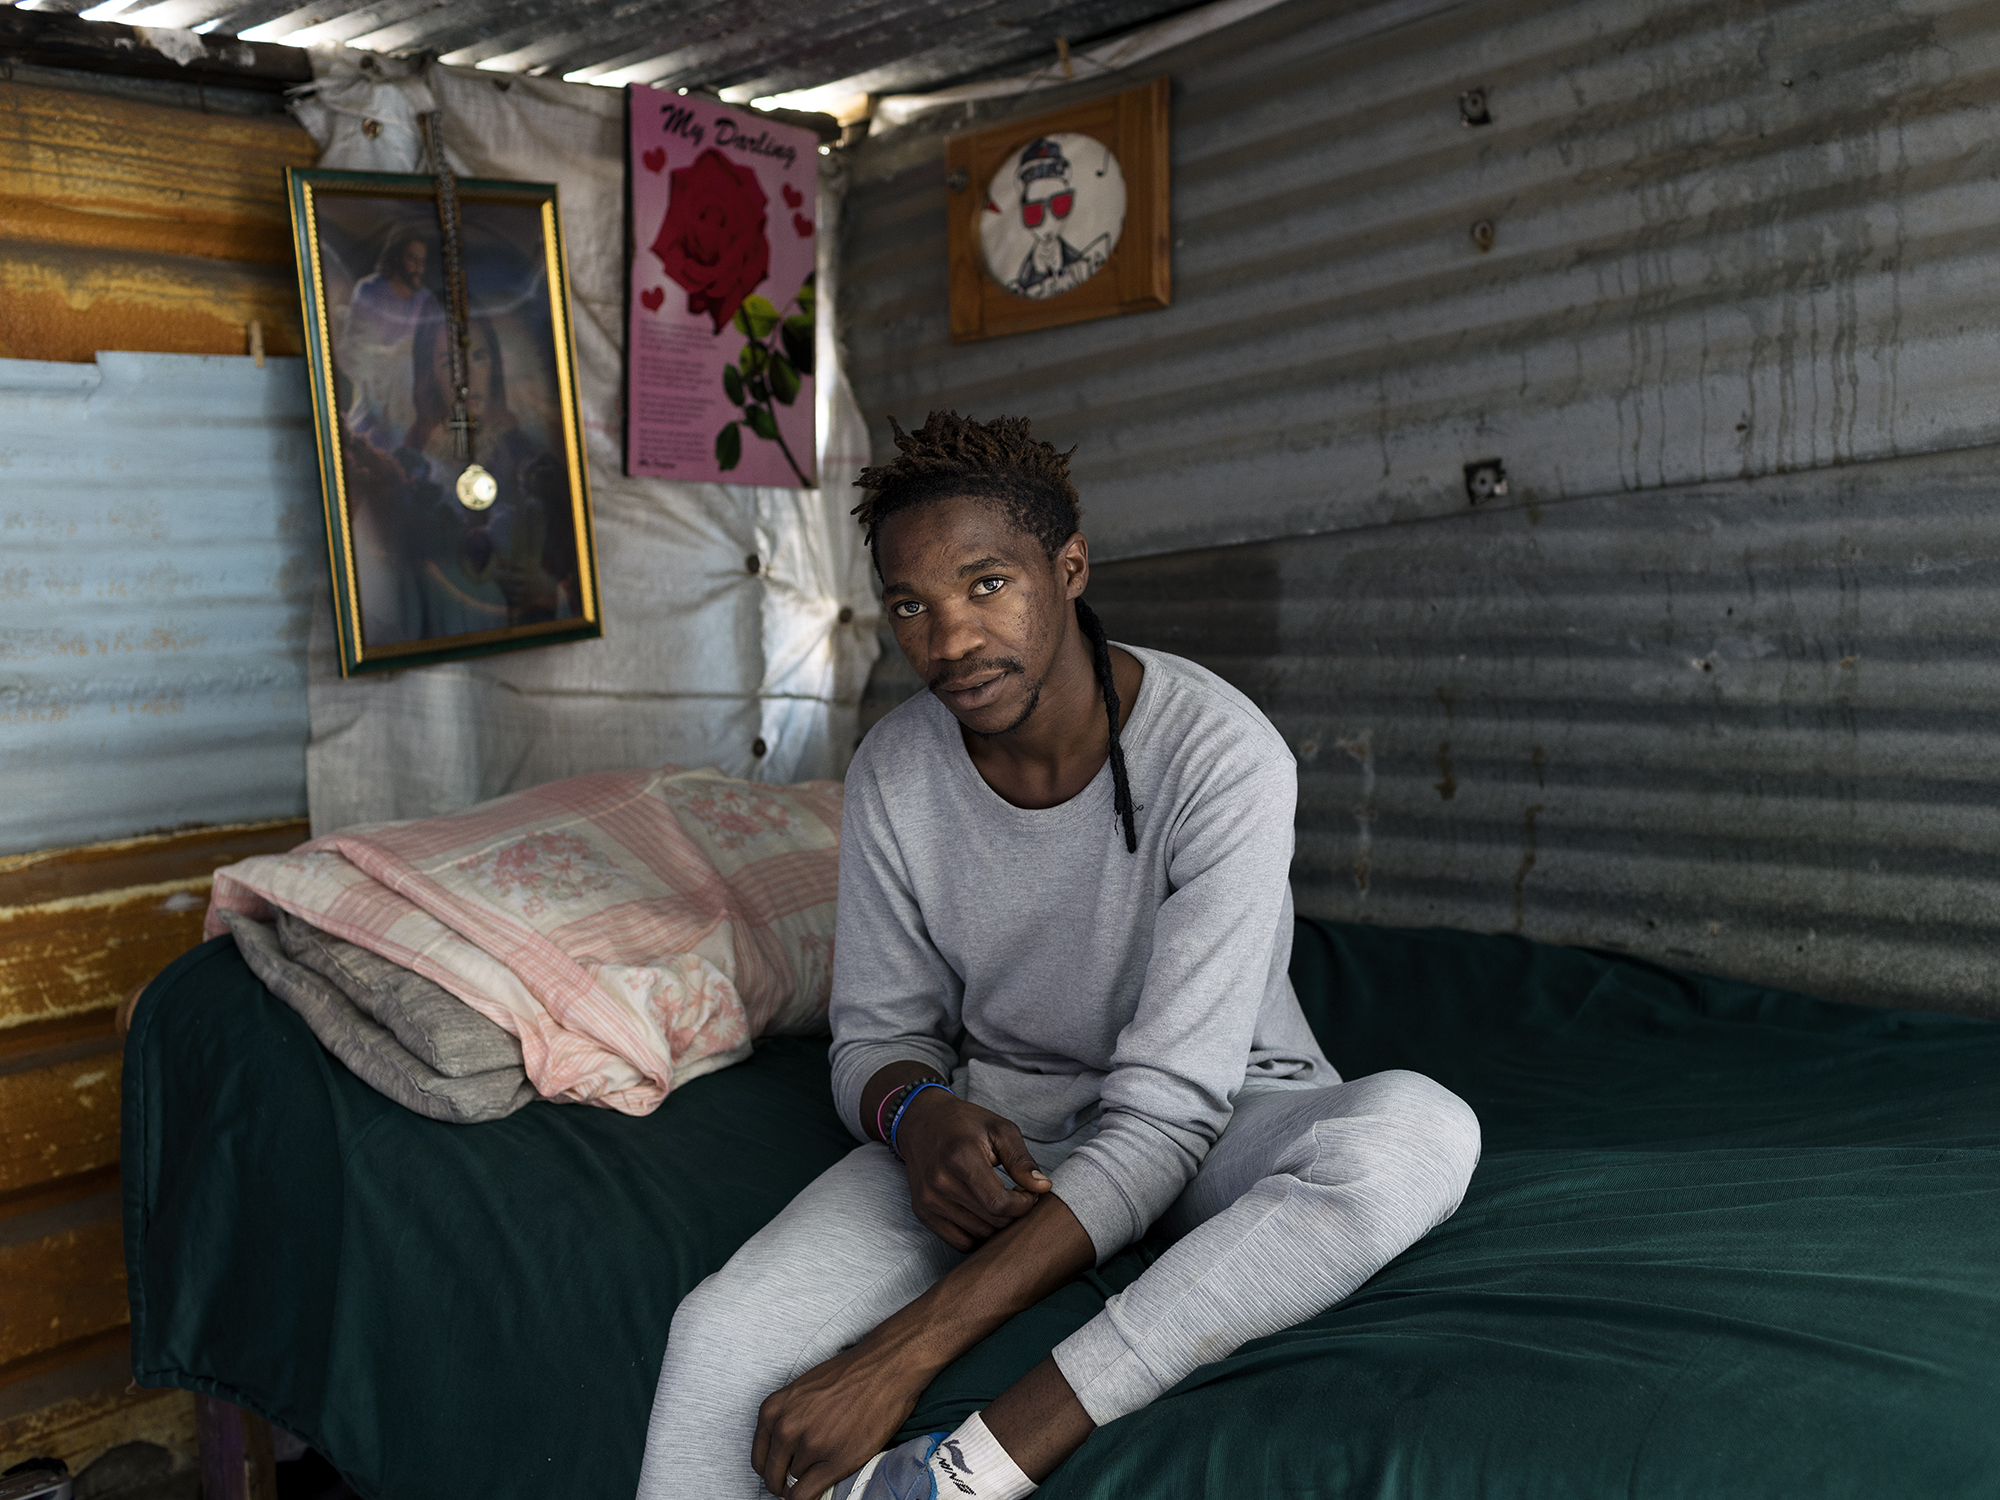 Andile Mswazi, 26, Rapper and Hip-Hop artist, Ikemeleng, Marikana, North West, Western Limb